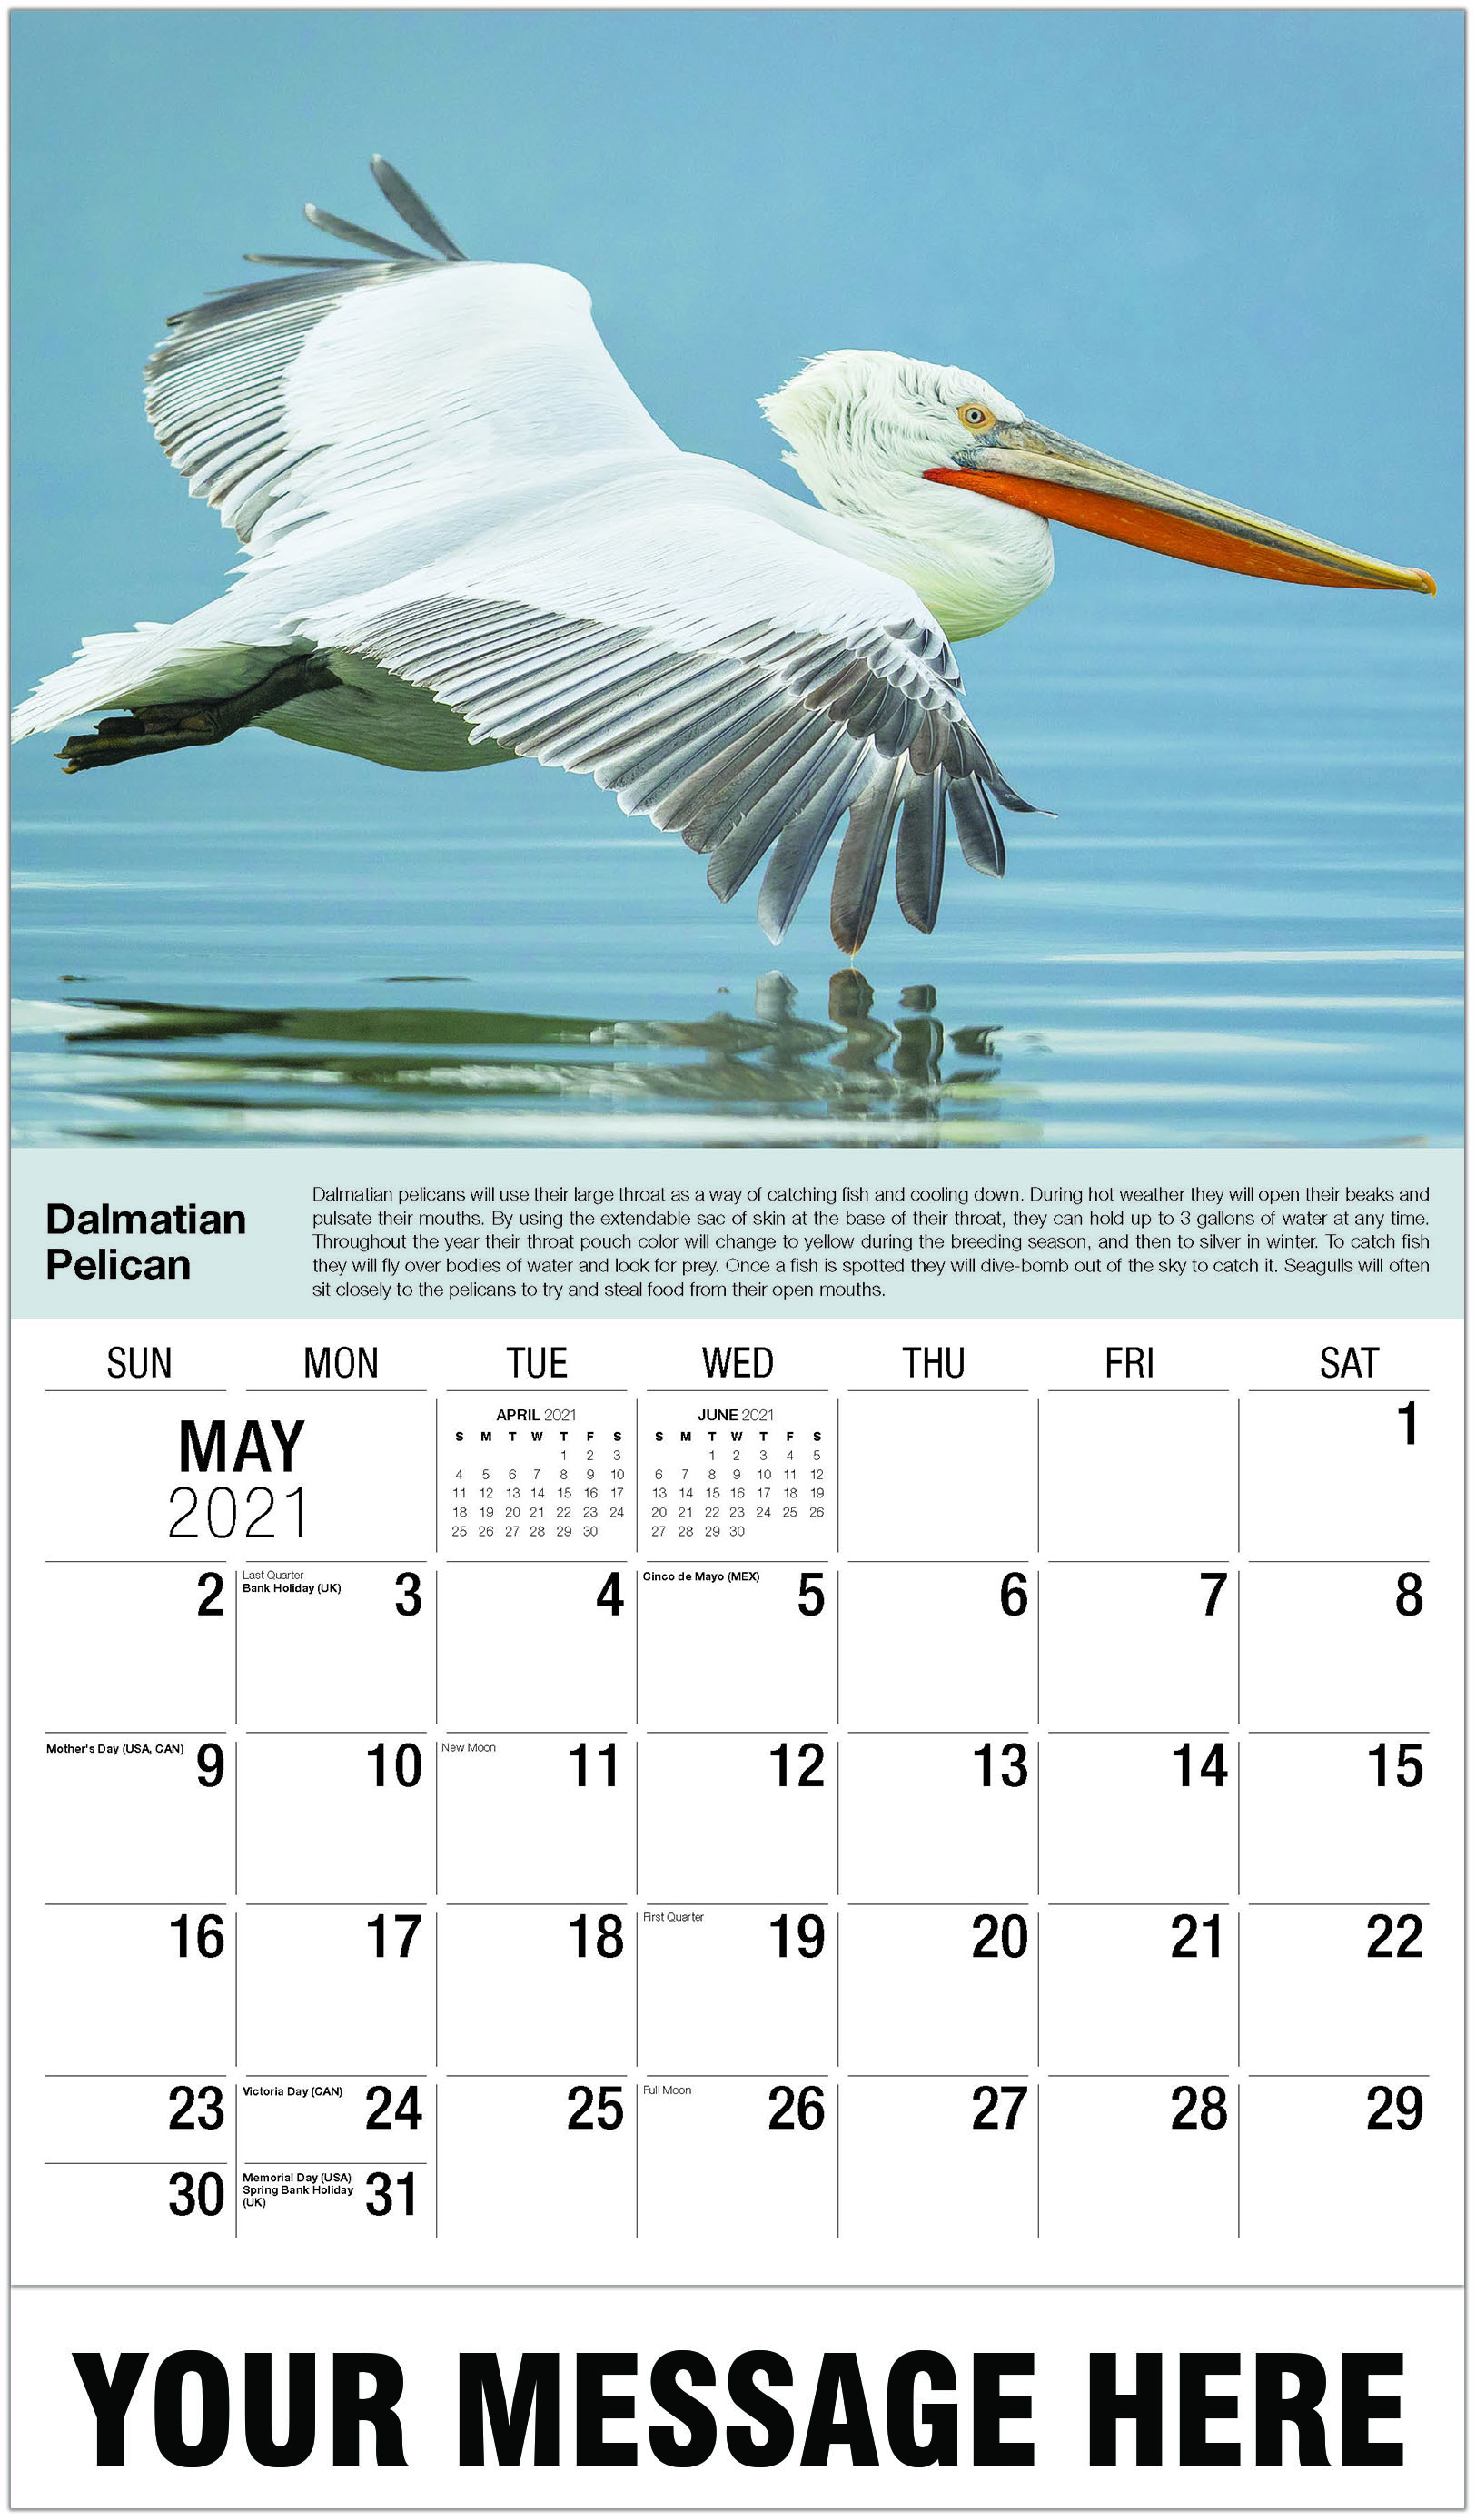 Dalmatian Pelican - May - International Wildlife 2021 Promotional Calendar